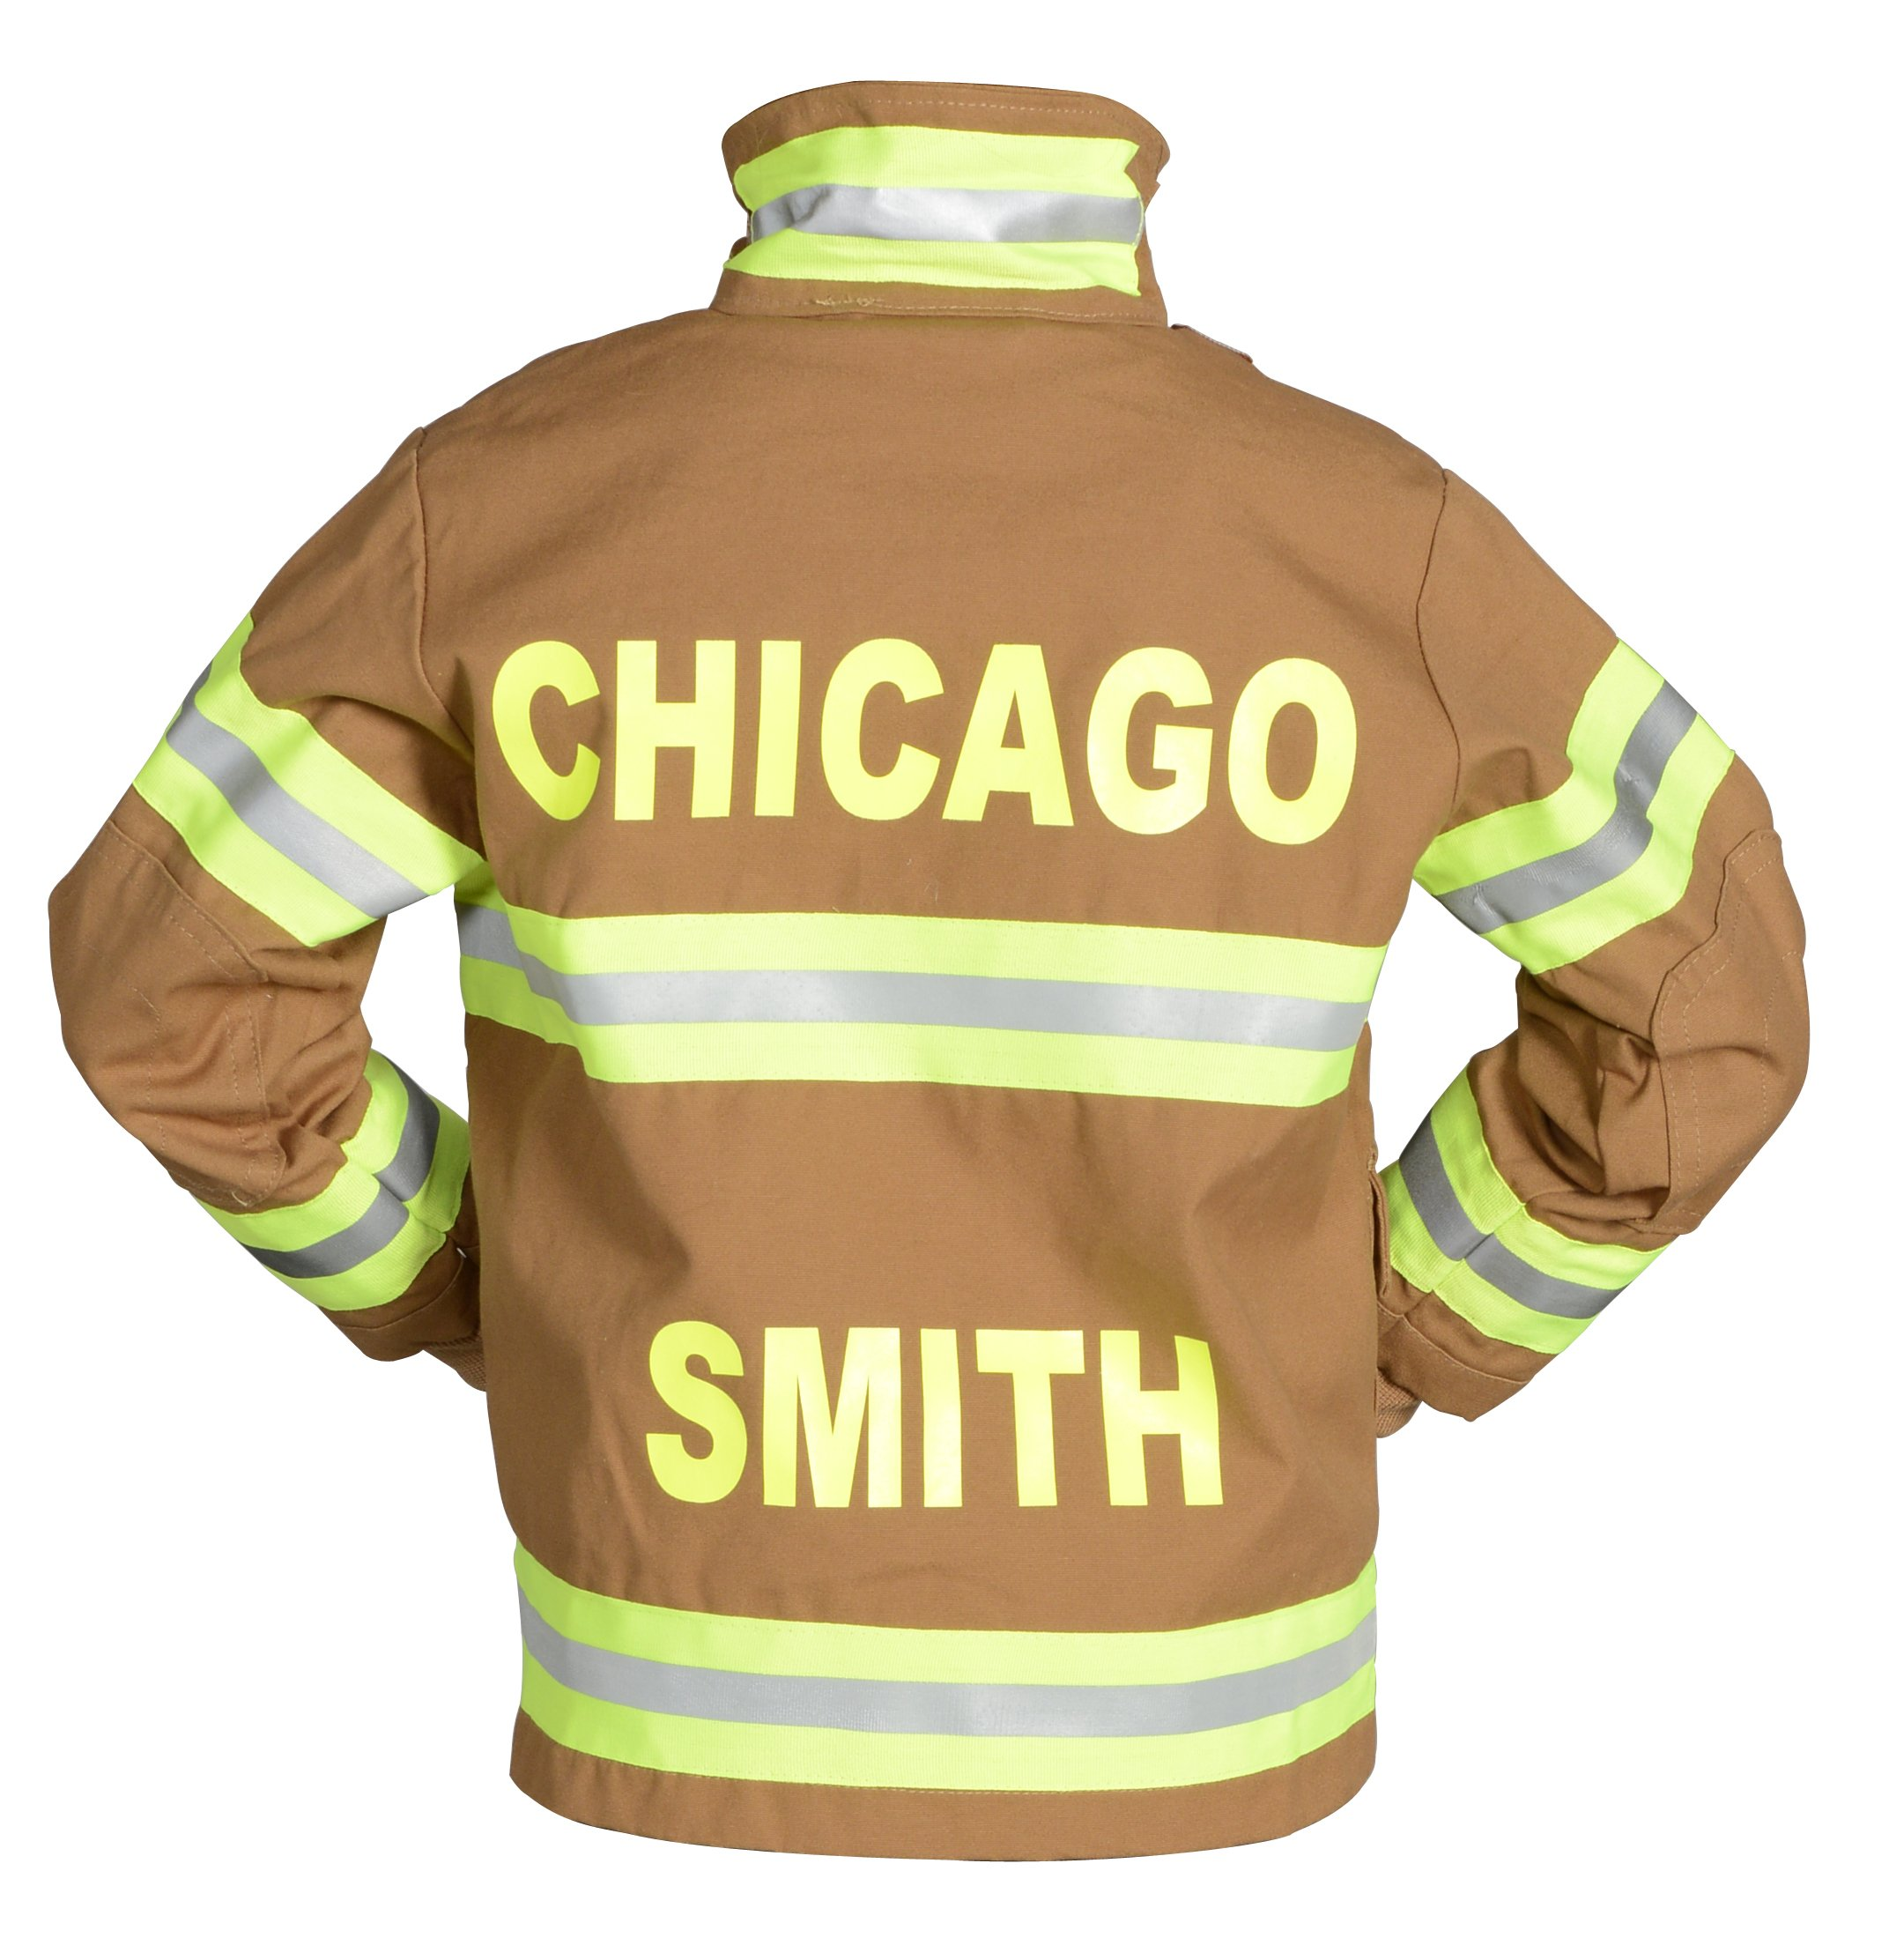 Aeromax PERSONALIZED Jr. Firefighter Suit / Bunker Gear, BLACK or TAN, available in multiple sizes (4/6, Tan) by Aeromax